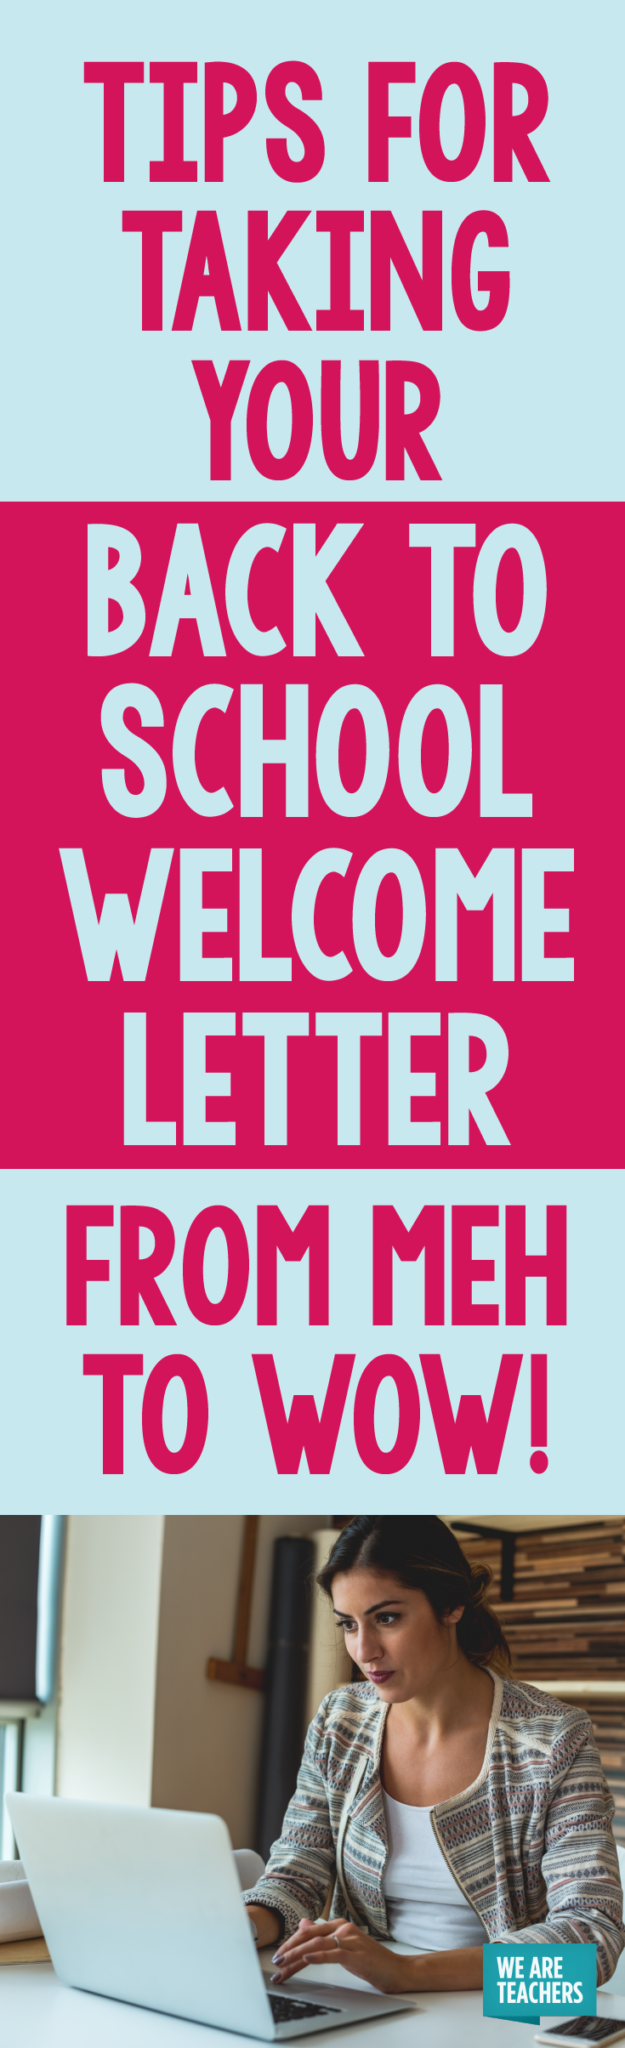 Tips For Taking Your Back To School Welcome Letter From Meh To Wow